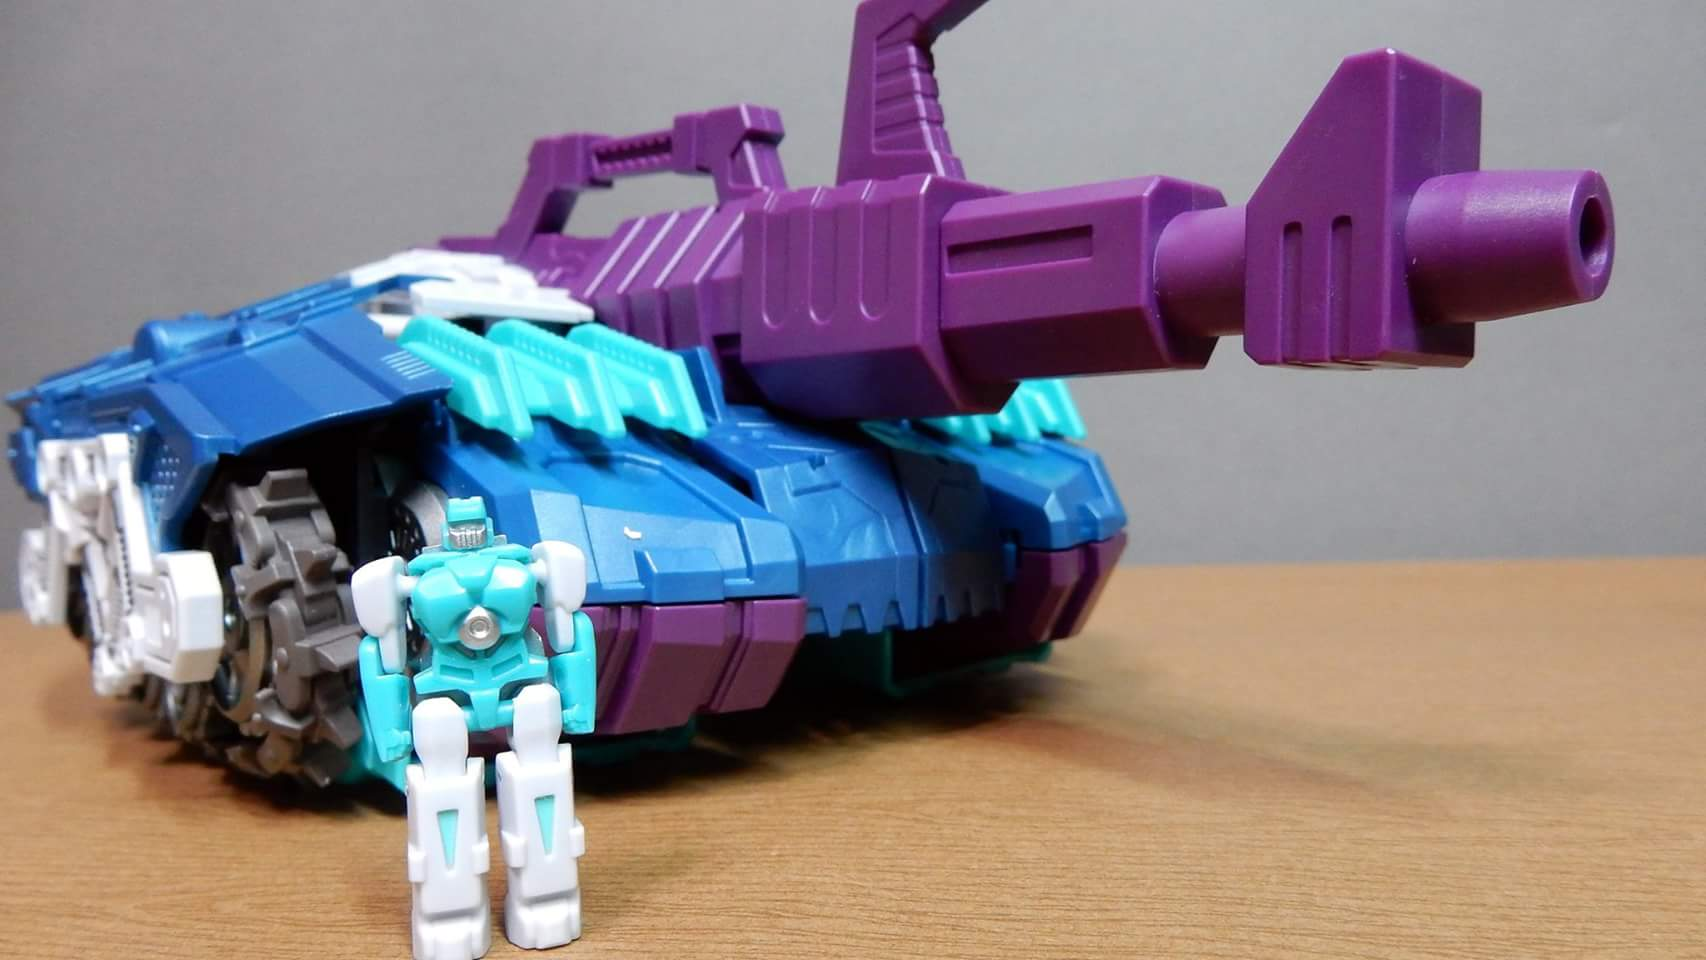 [Mastermind Creations] Produit Tiers - R-17 Carnifex - aka Overlord (TF Masterforce) - Page 3 5Qp15peY